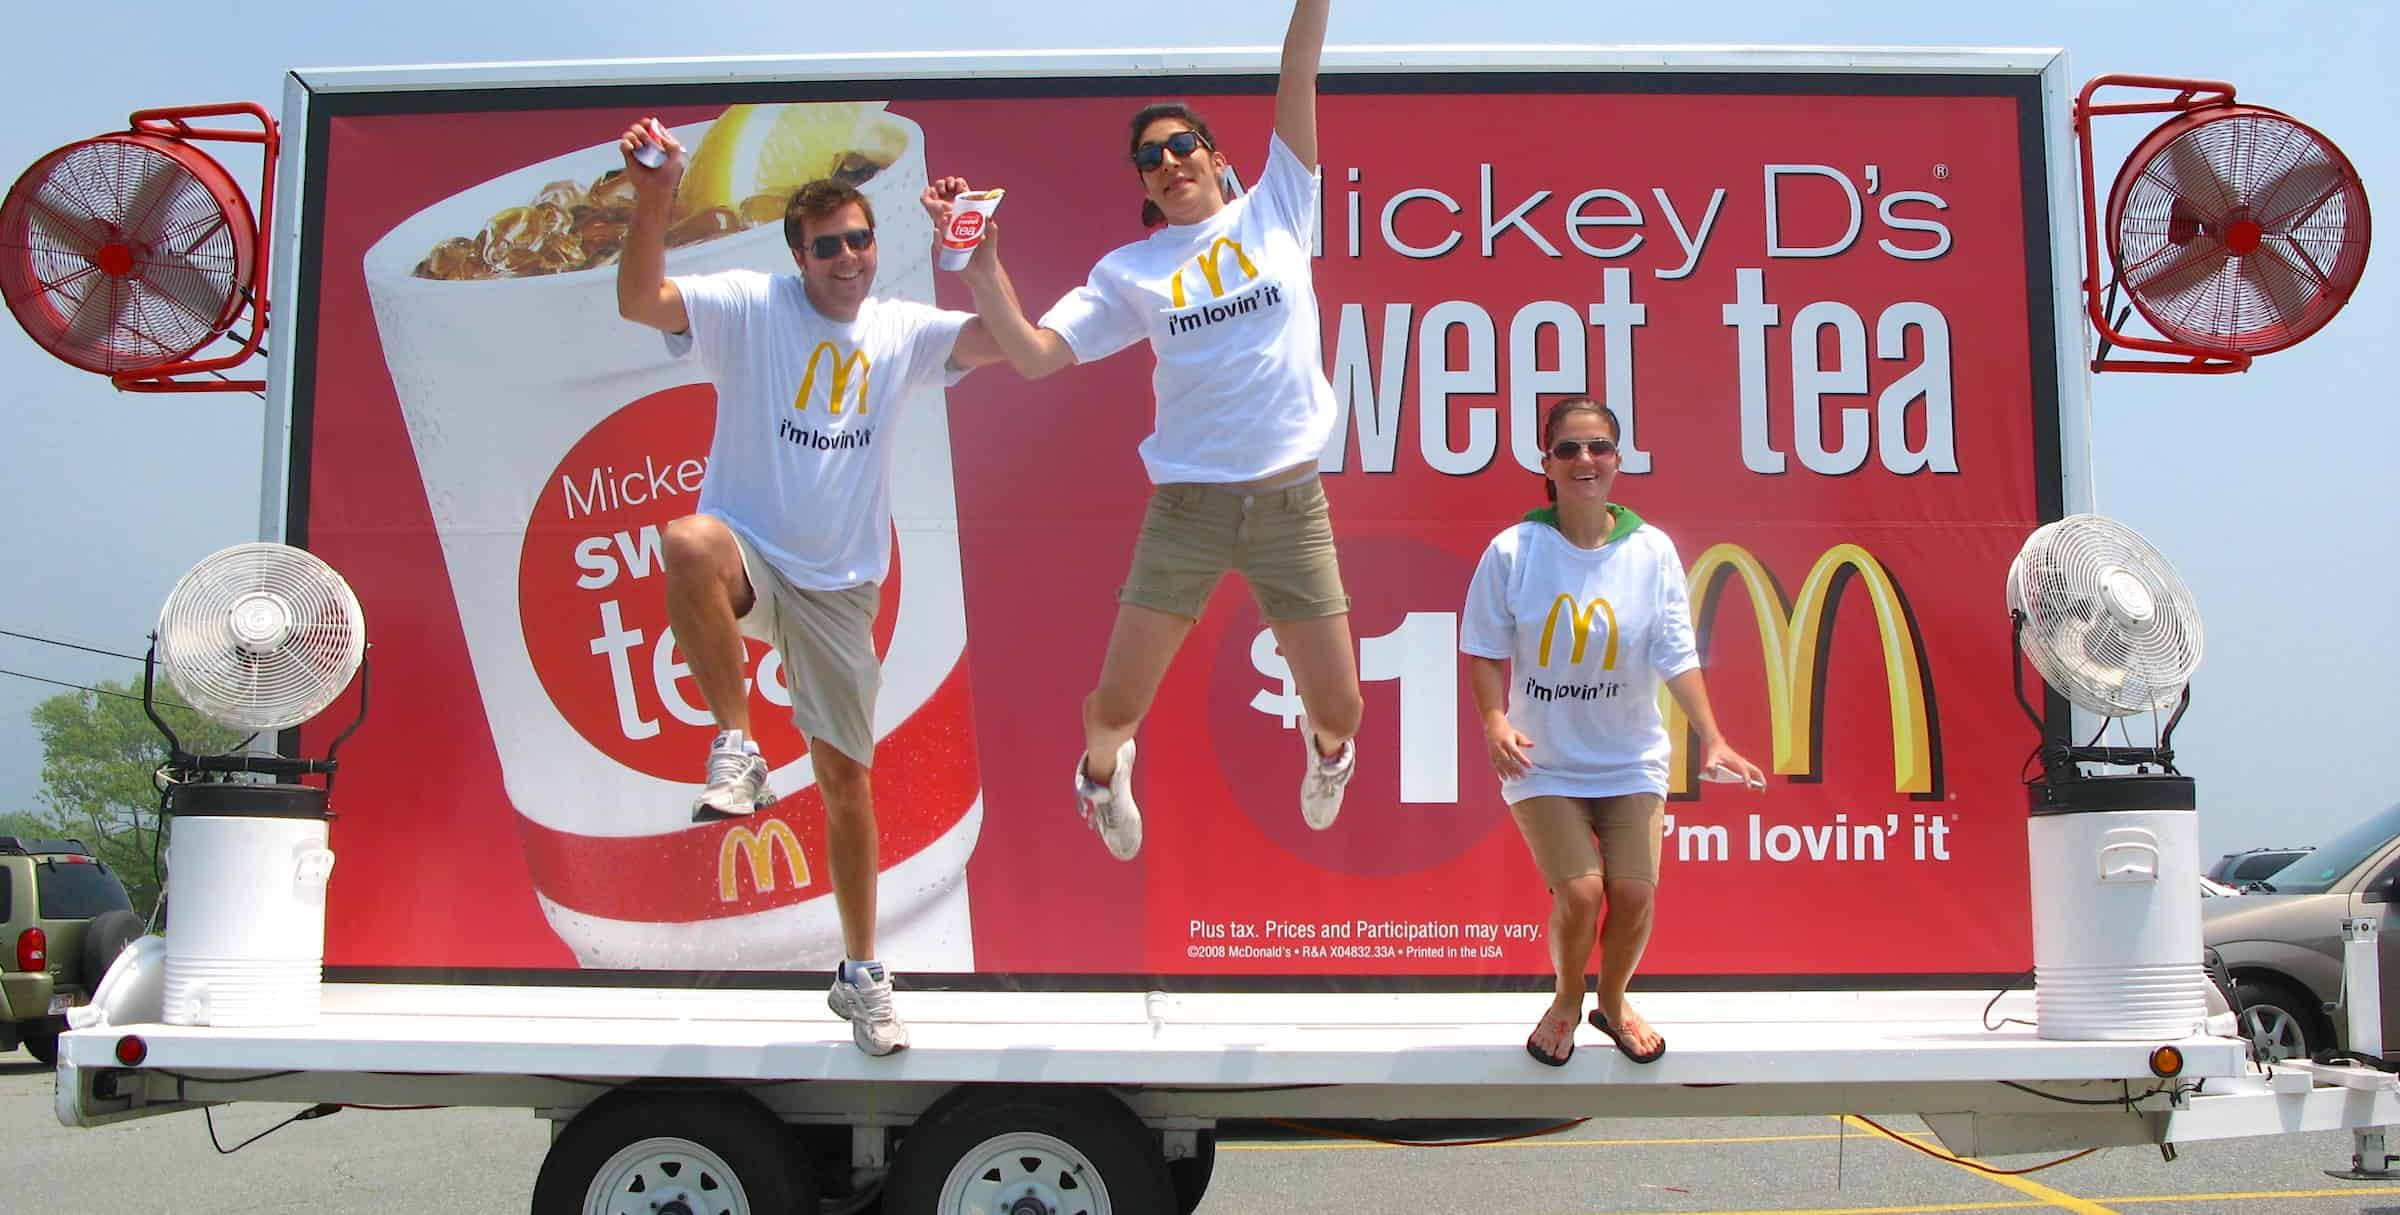 McDonald's Creative Mobile BIllboard Advertising Marketing